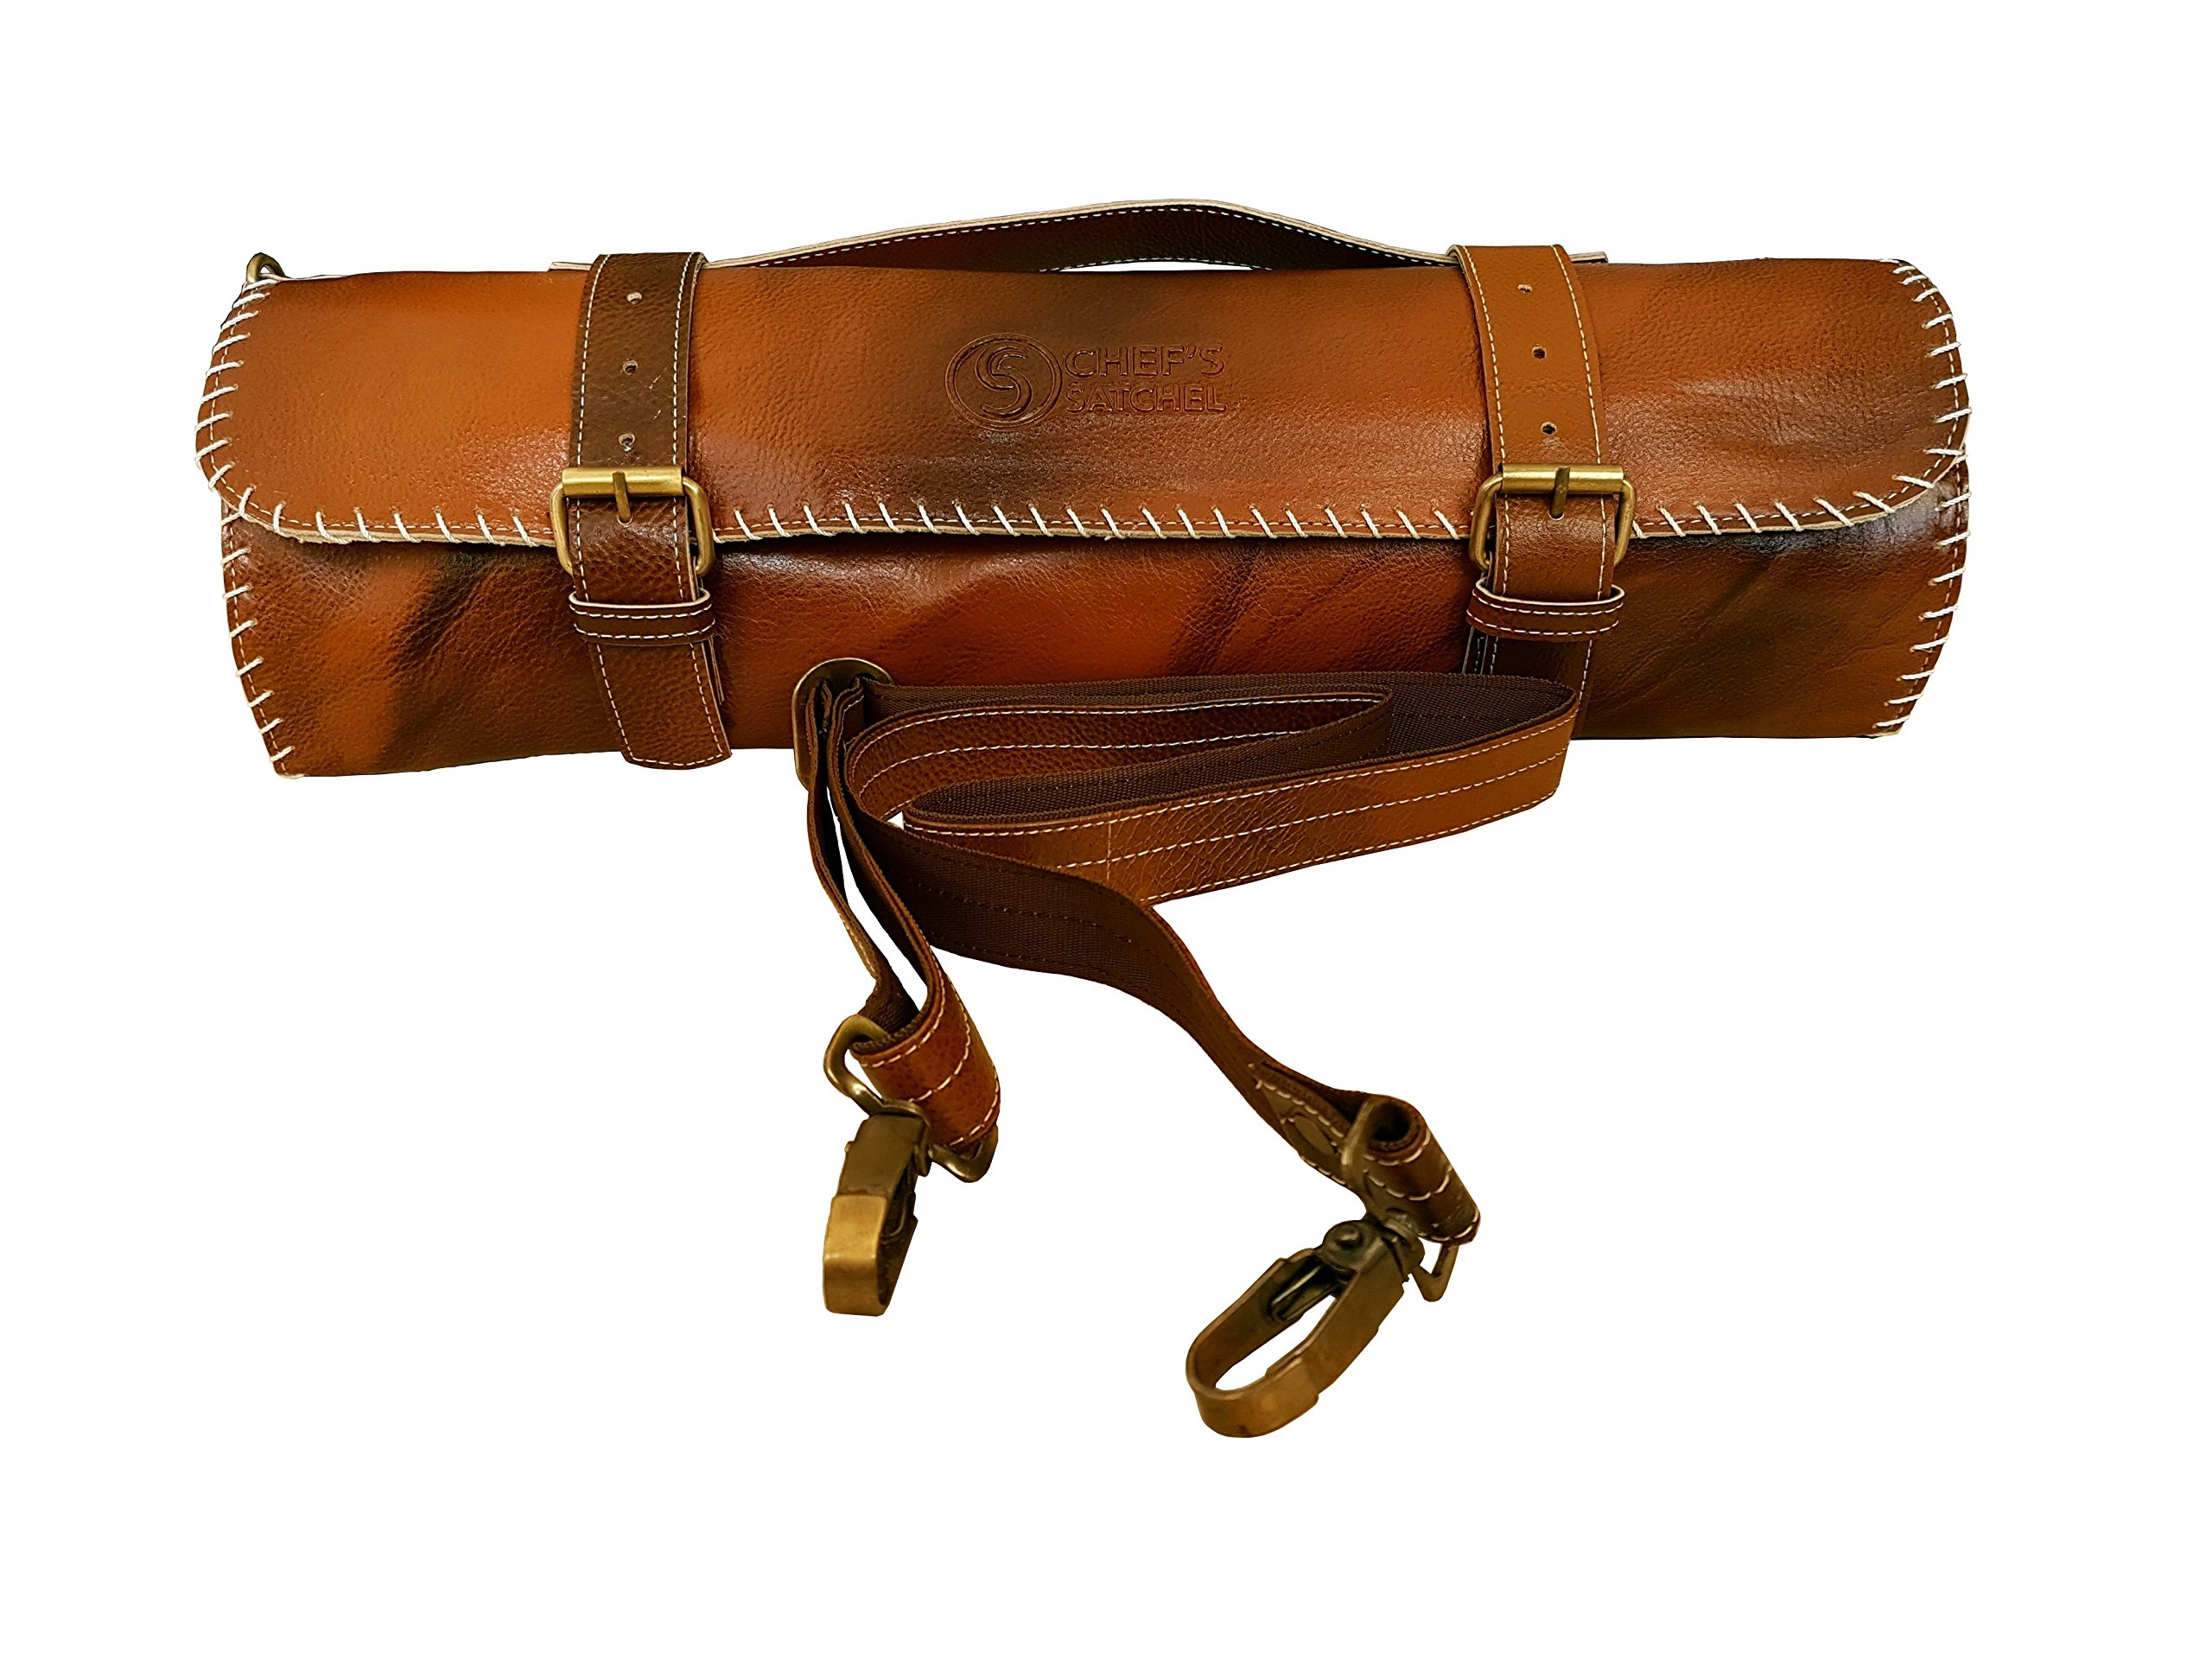 Handmade Leather Chef Knife Bag / Chef Knife Roll - 8 Pockets Tan Leather